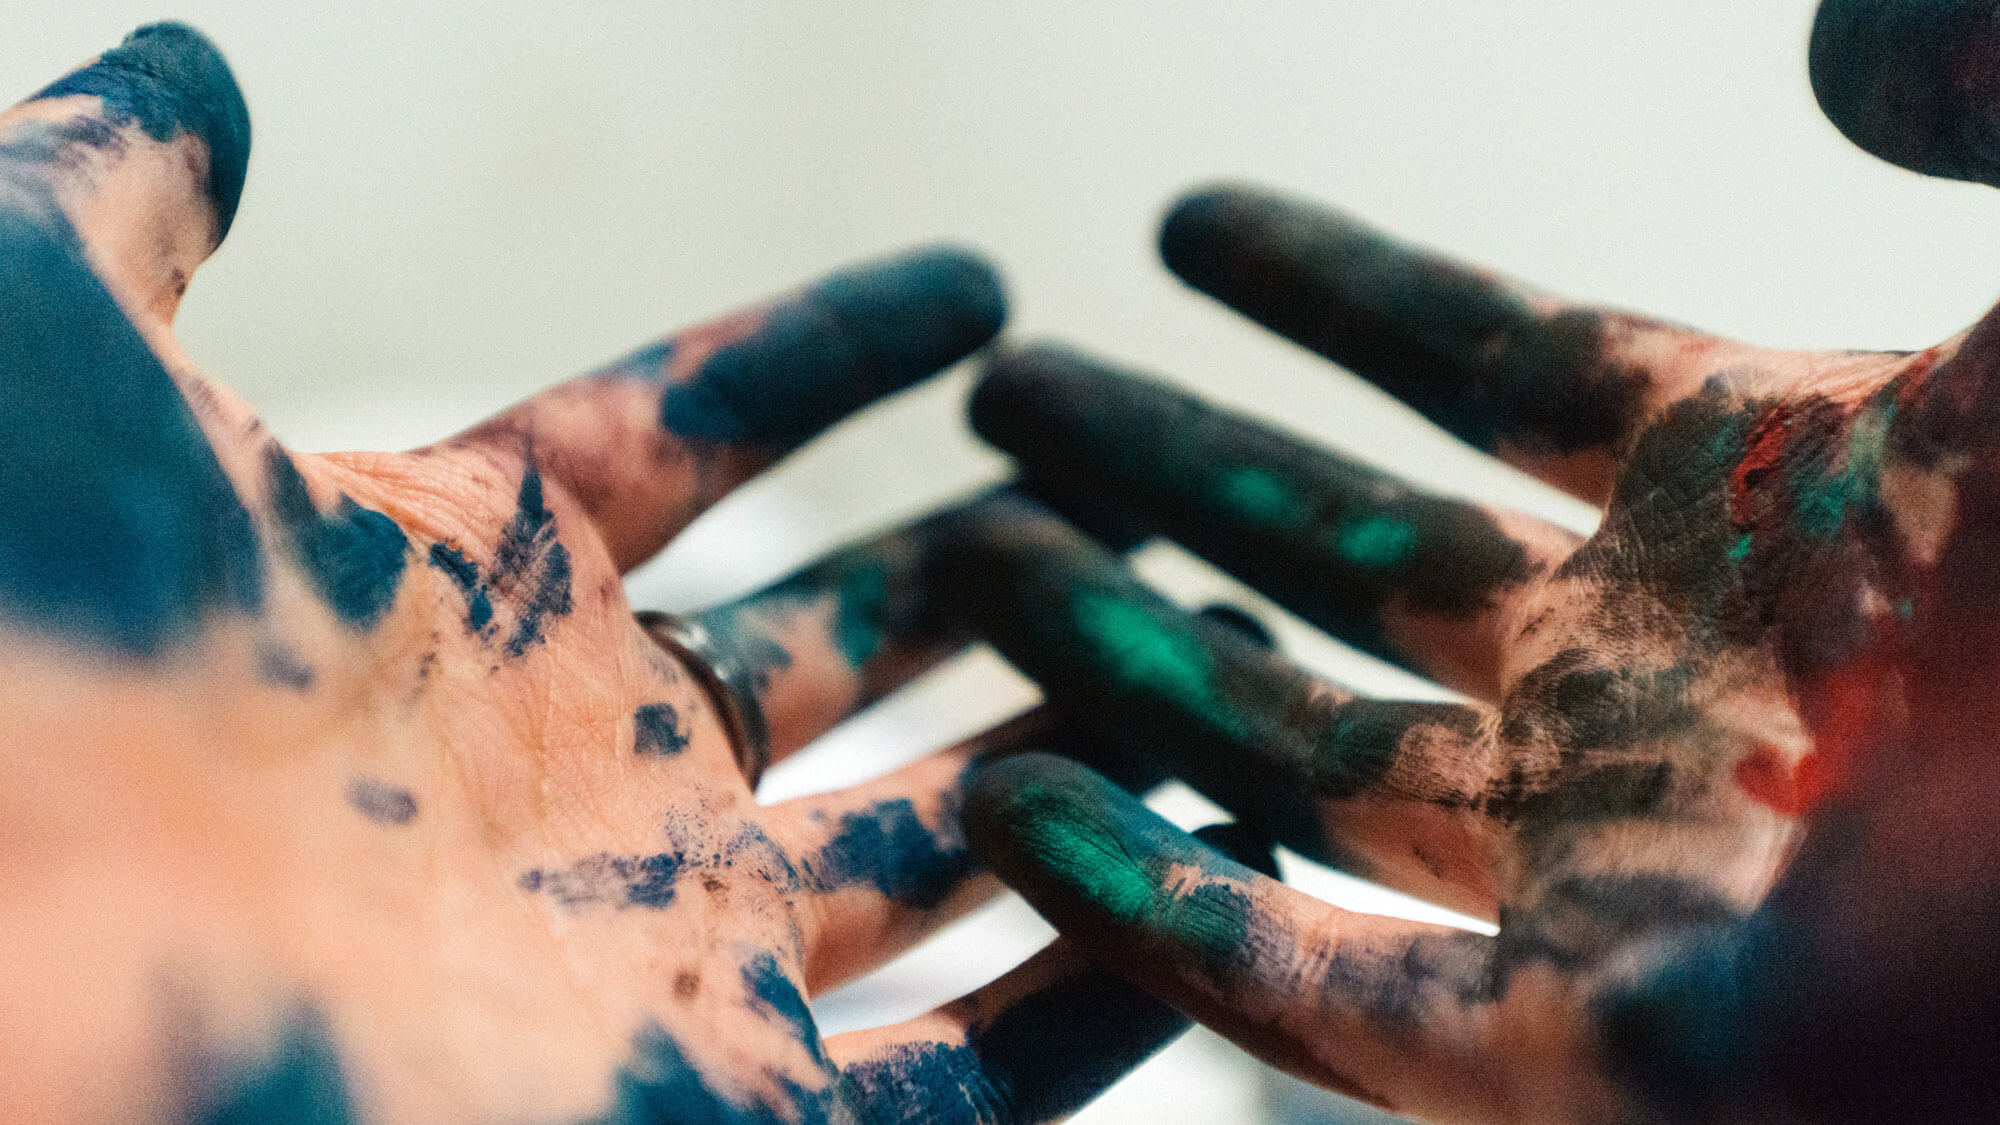 innovation requires you to get your hands dirty